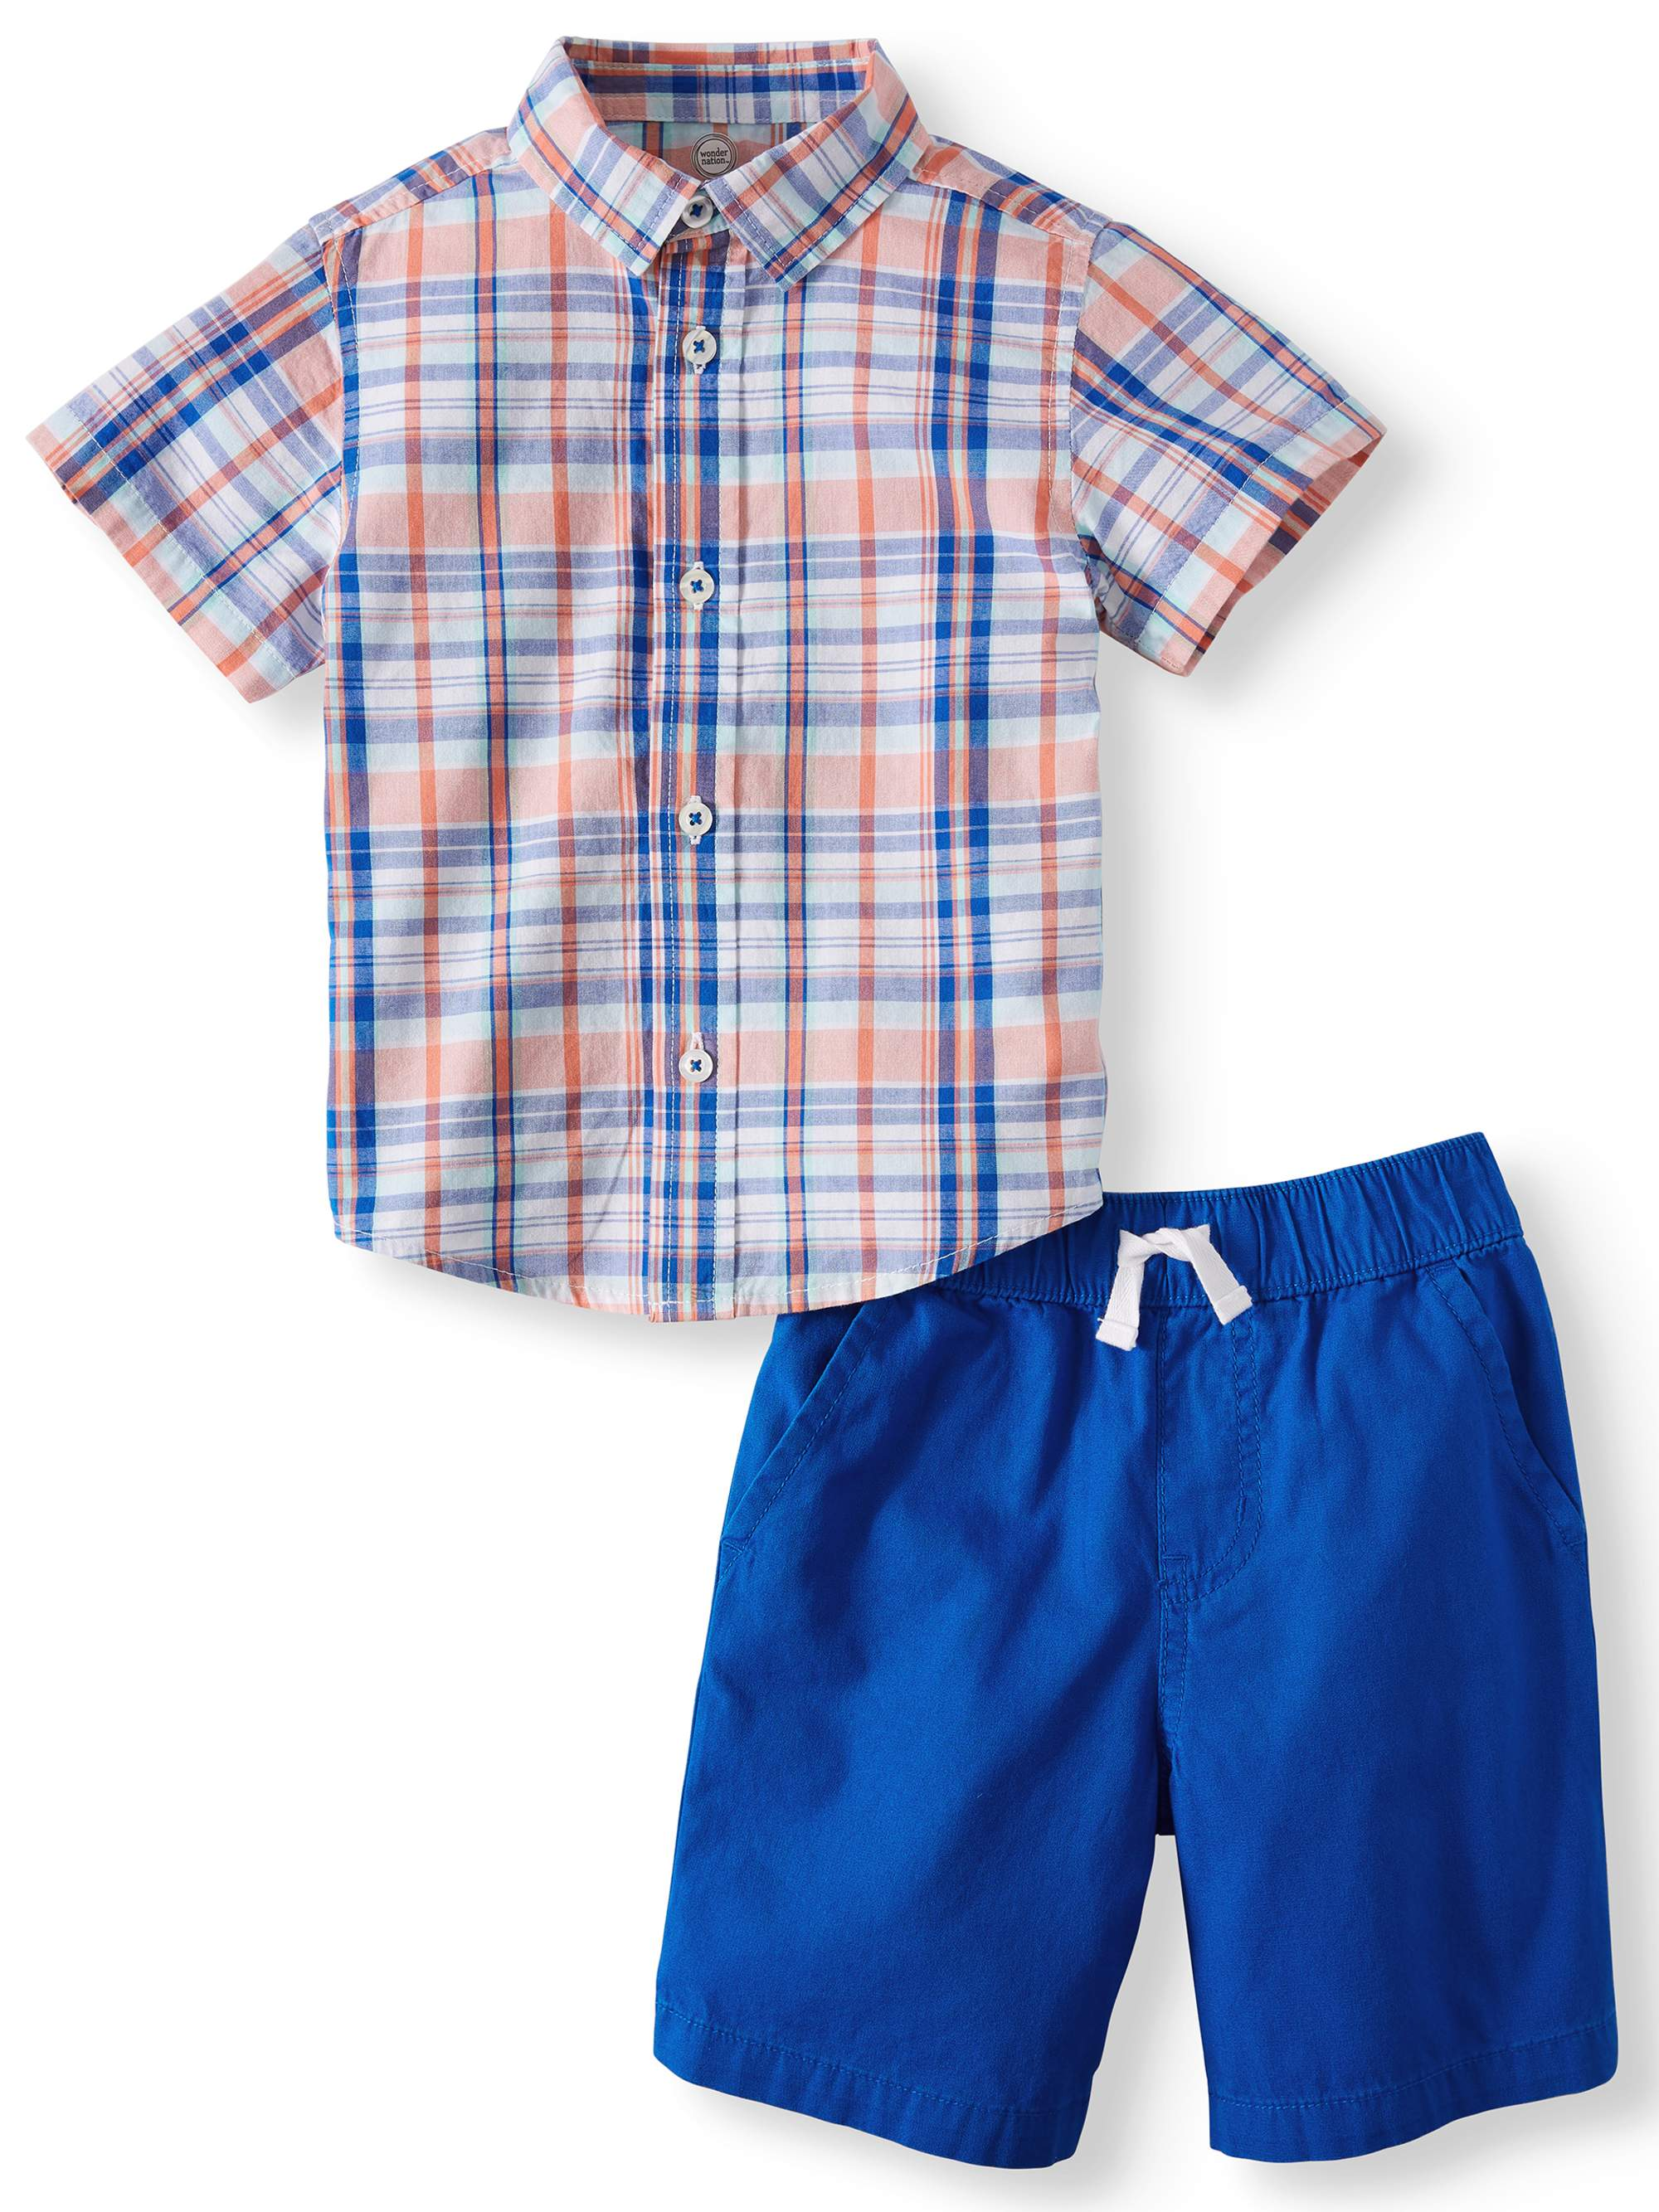 Short Sleeve Button Down & Shorts, 2pc Outfit Set (Toddler Boys)